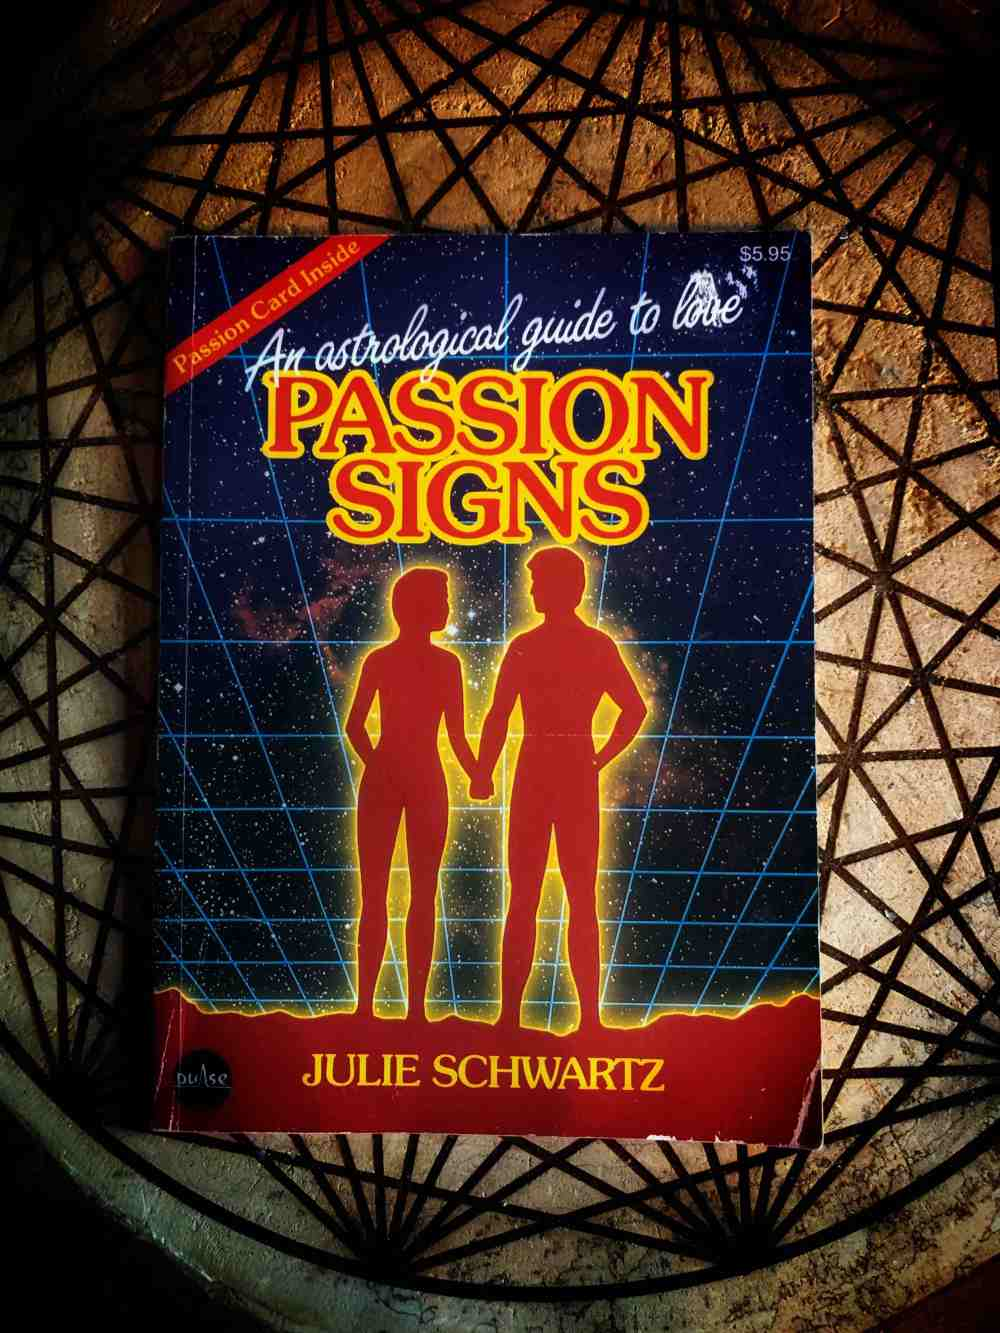 Passion Signs: An Astrological Guide to Love